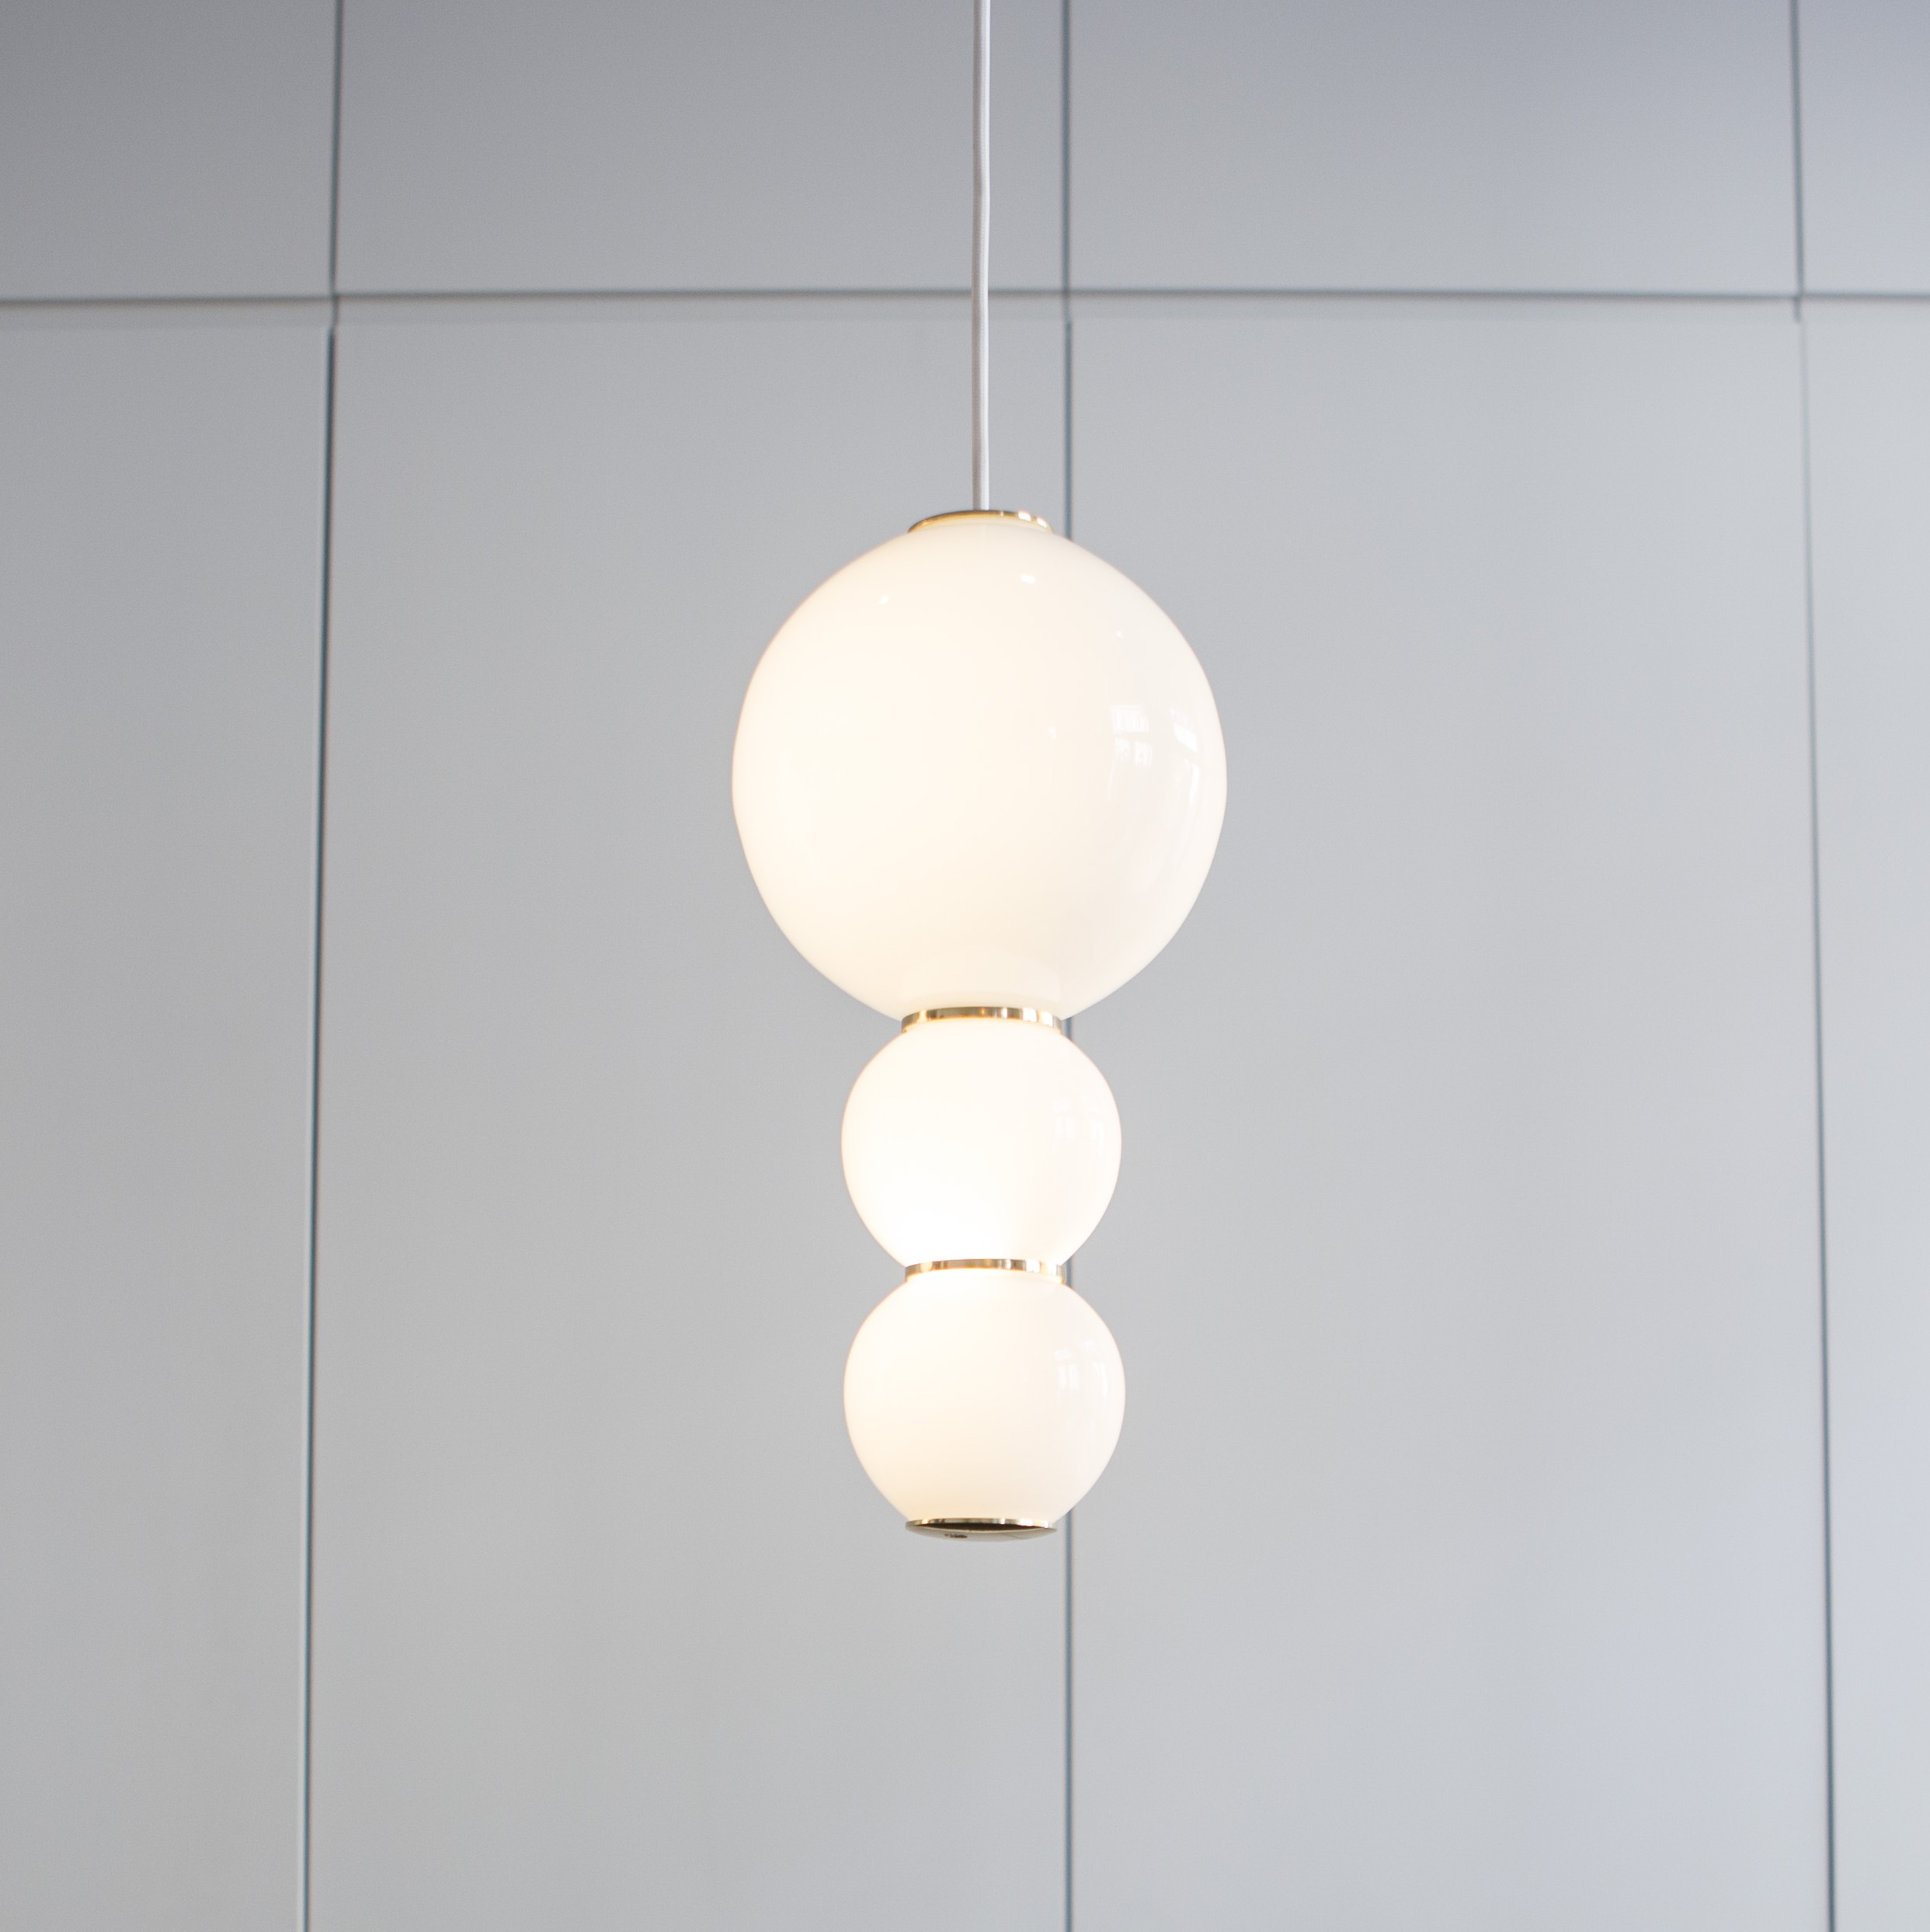 Suspension led c pearls blanc or 18cm formagenda for Luminaire suspension blanc